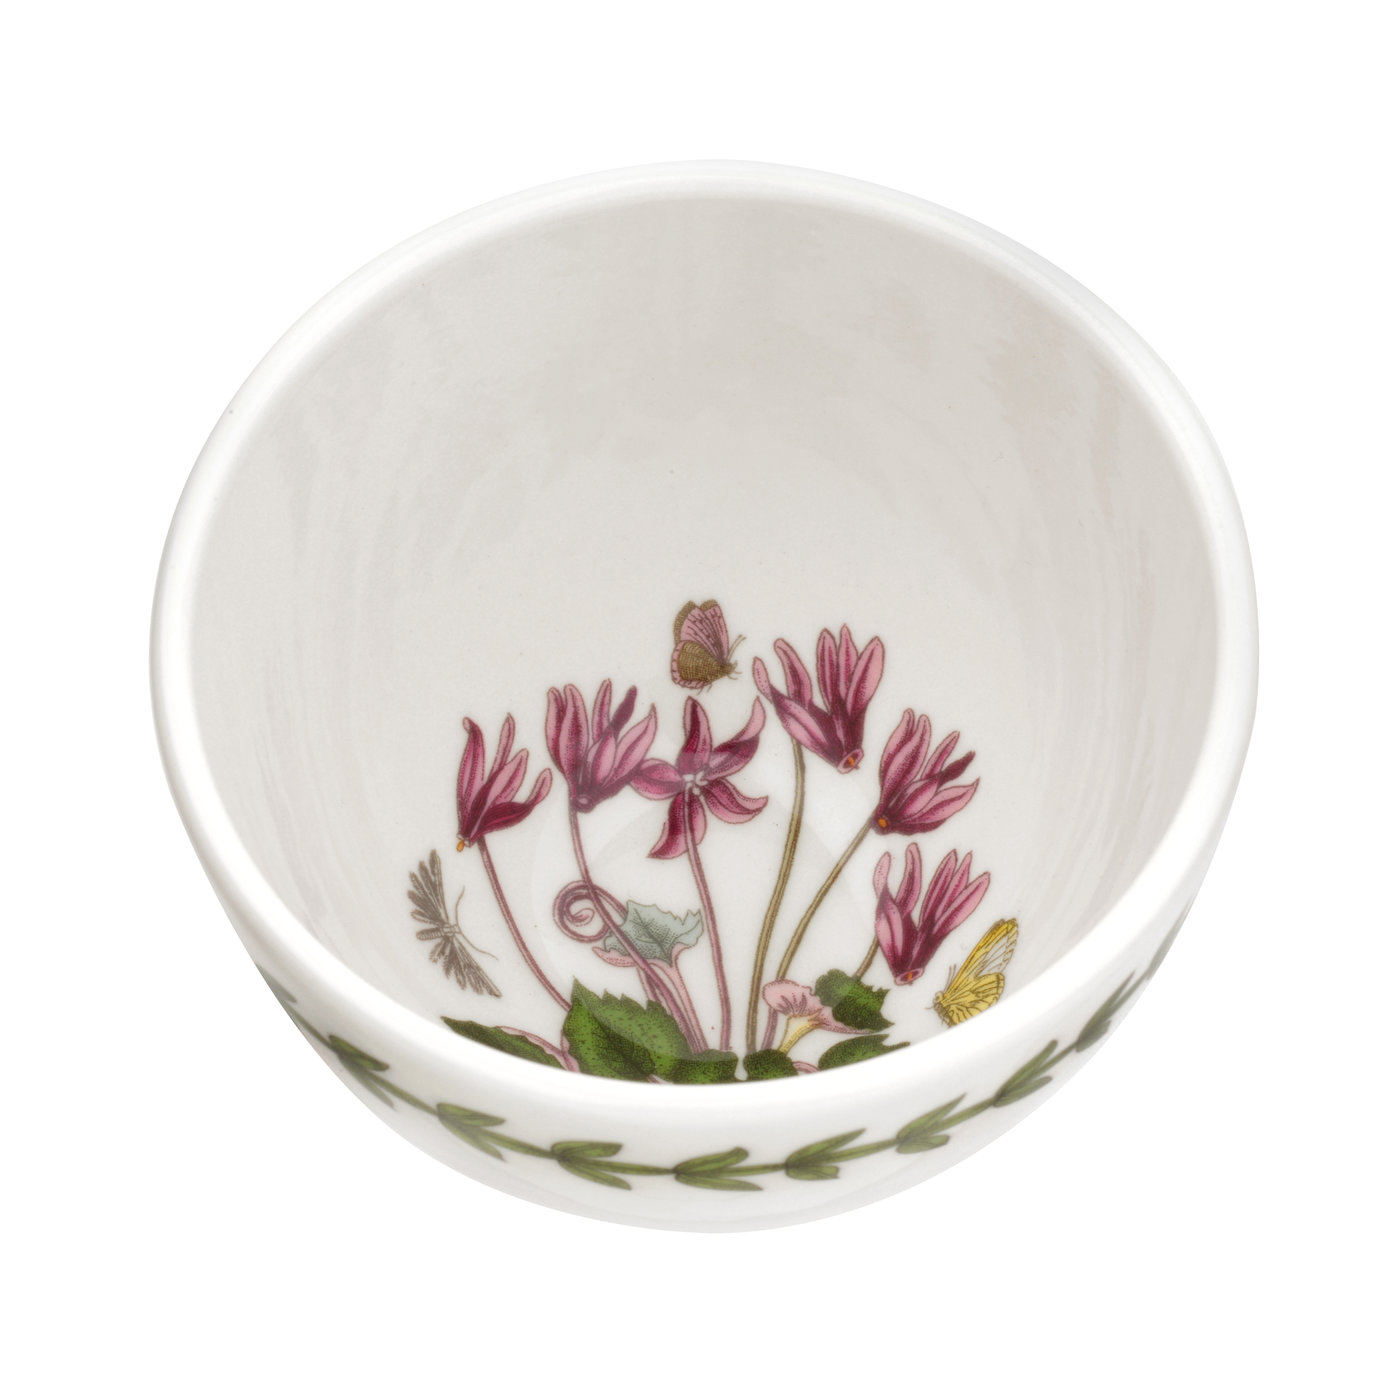 Botanic Garden Set of 4 Small Bowls (Cyclamen) image number 0